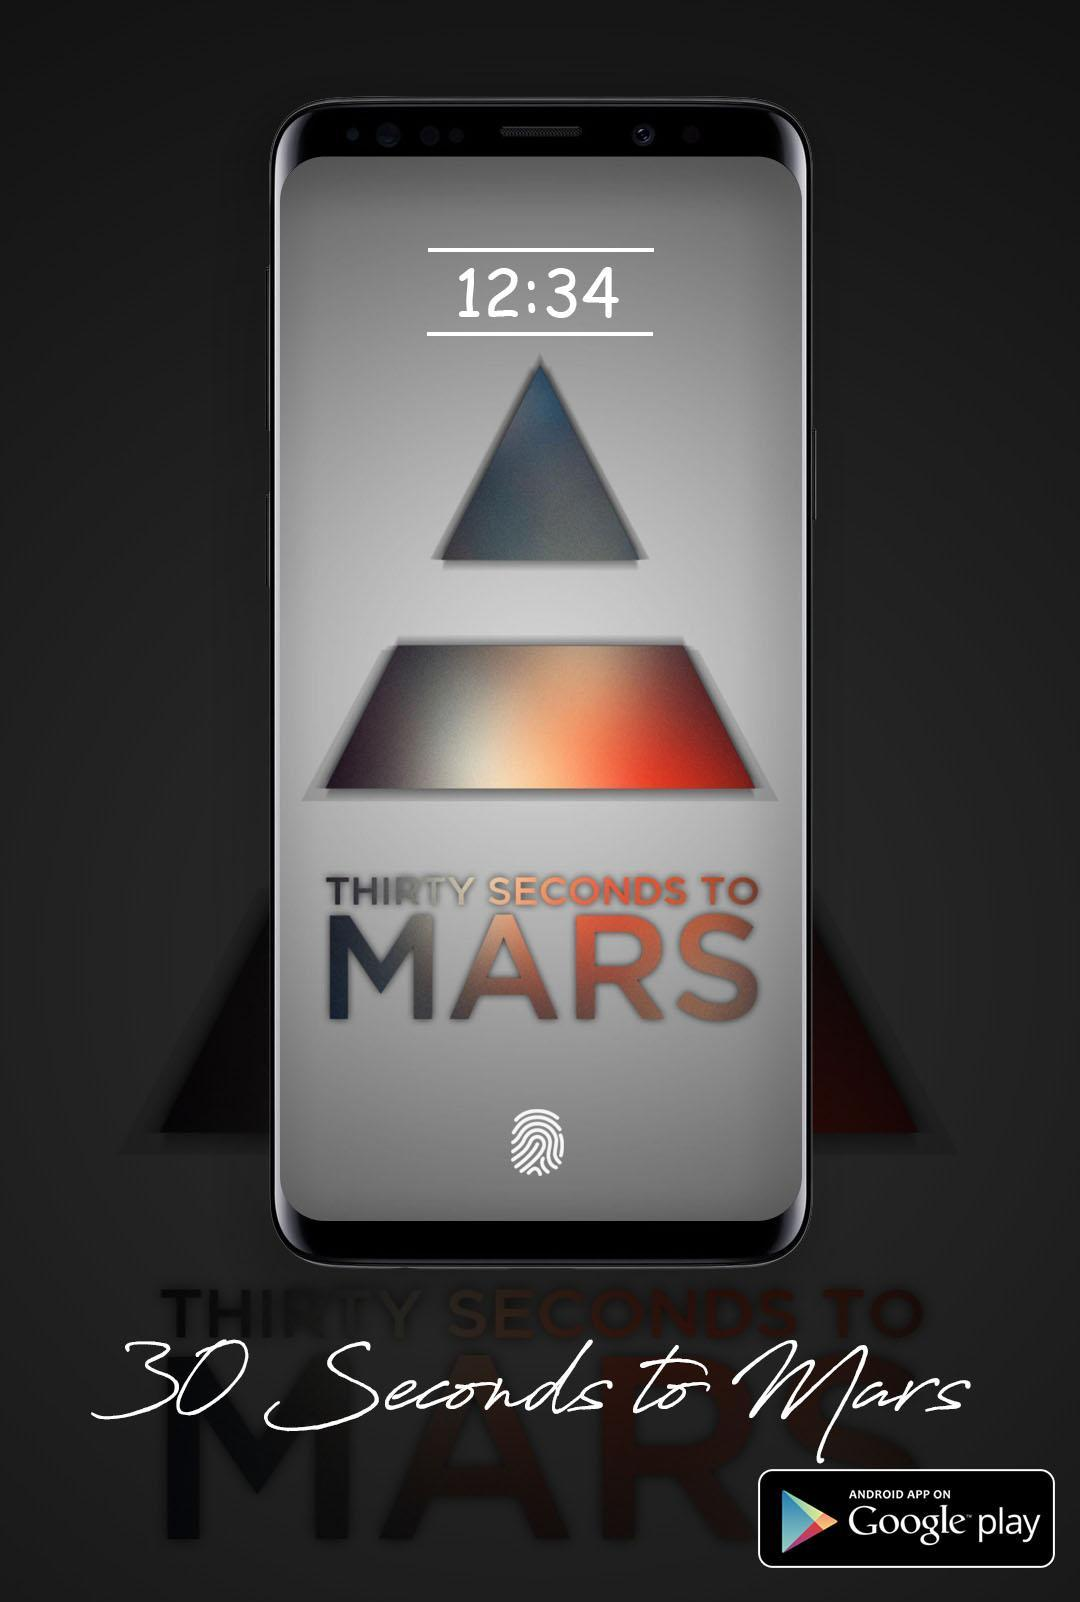 30 Seconds To Mars Wallpaper Hd For Android Apk Download